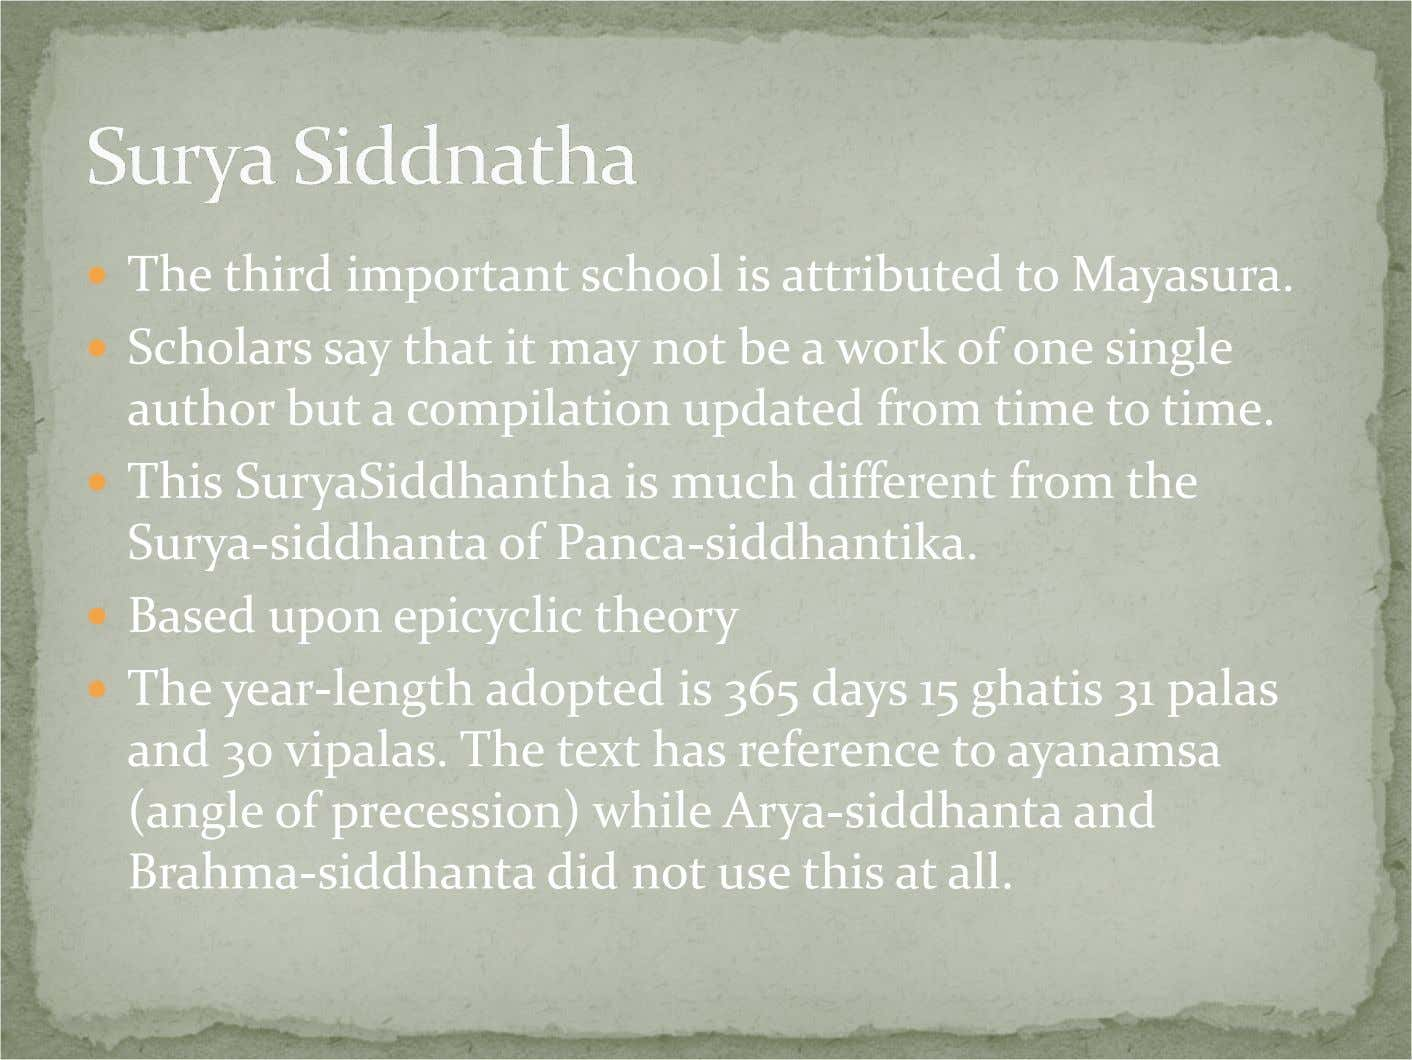 The third important school is attributed to Mayasura. Scholars say that it may not be